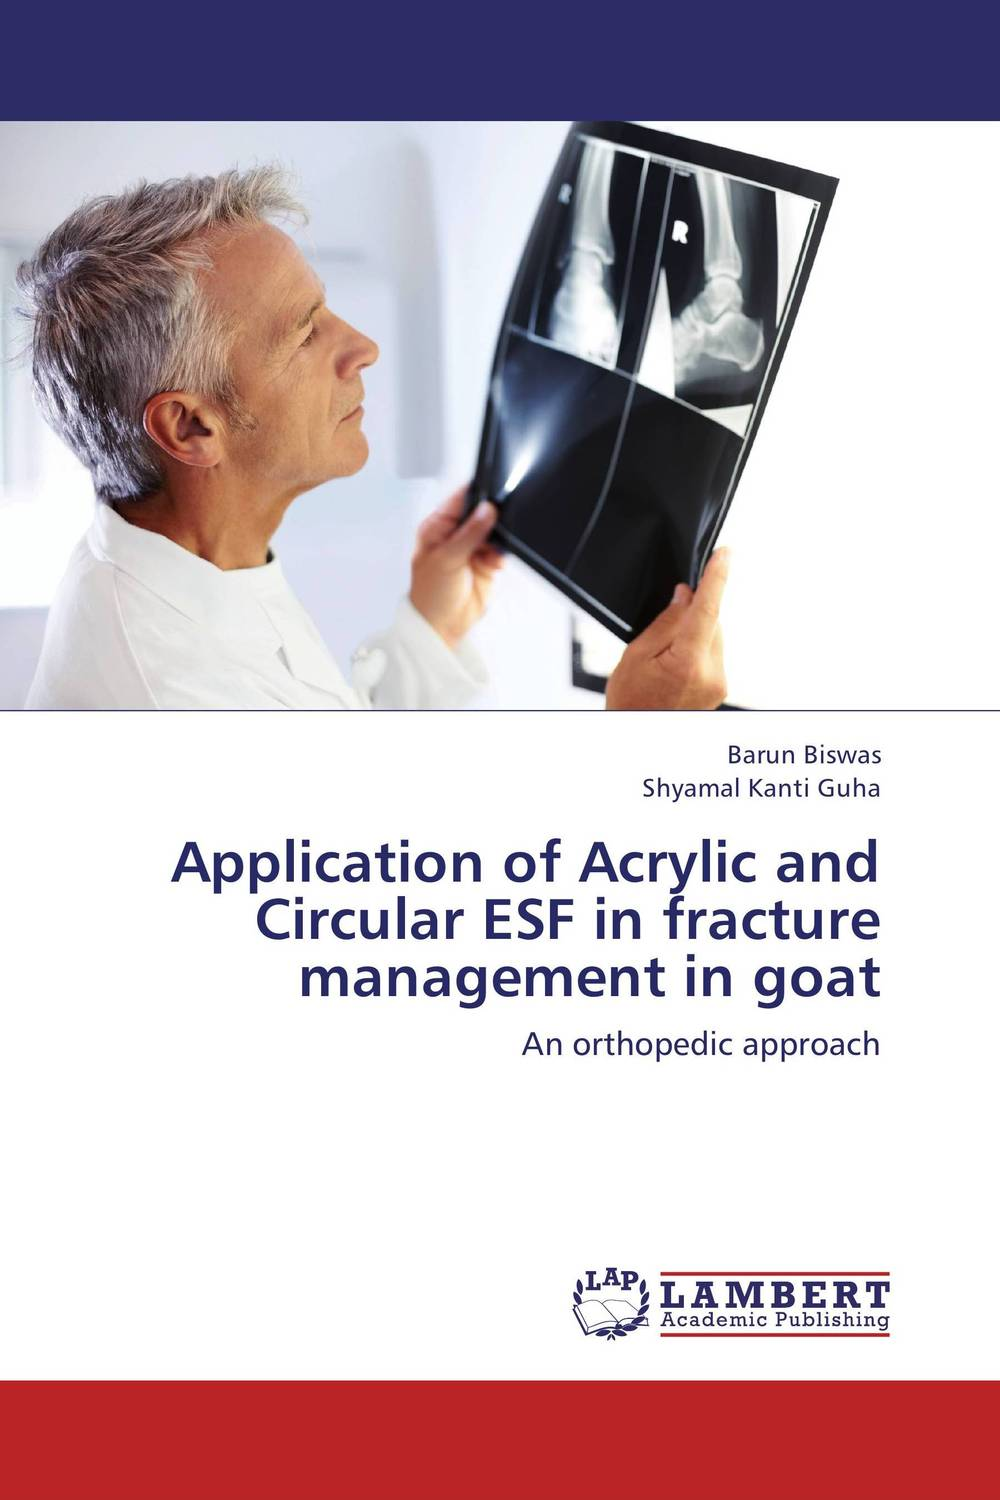 цена на Application of Acrylic and Circular ESF in fracture management in goat